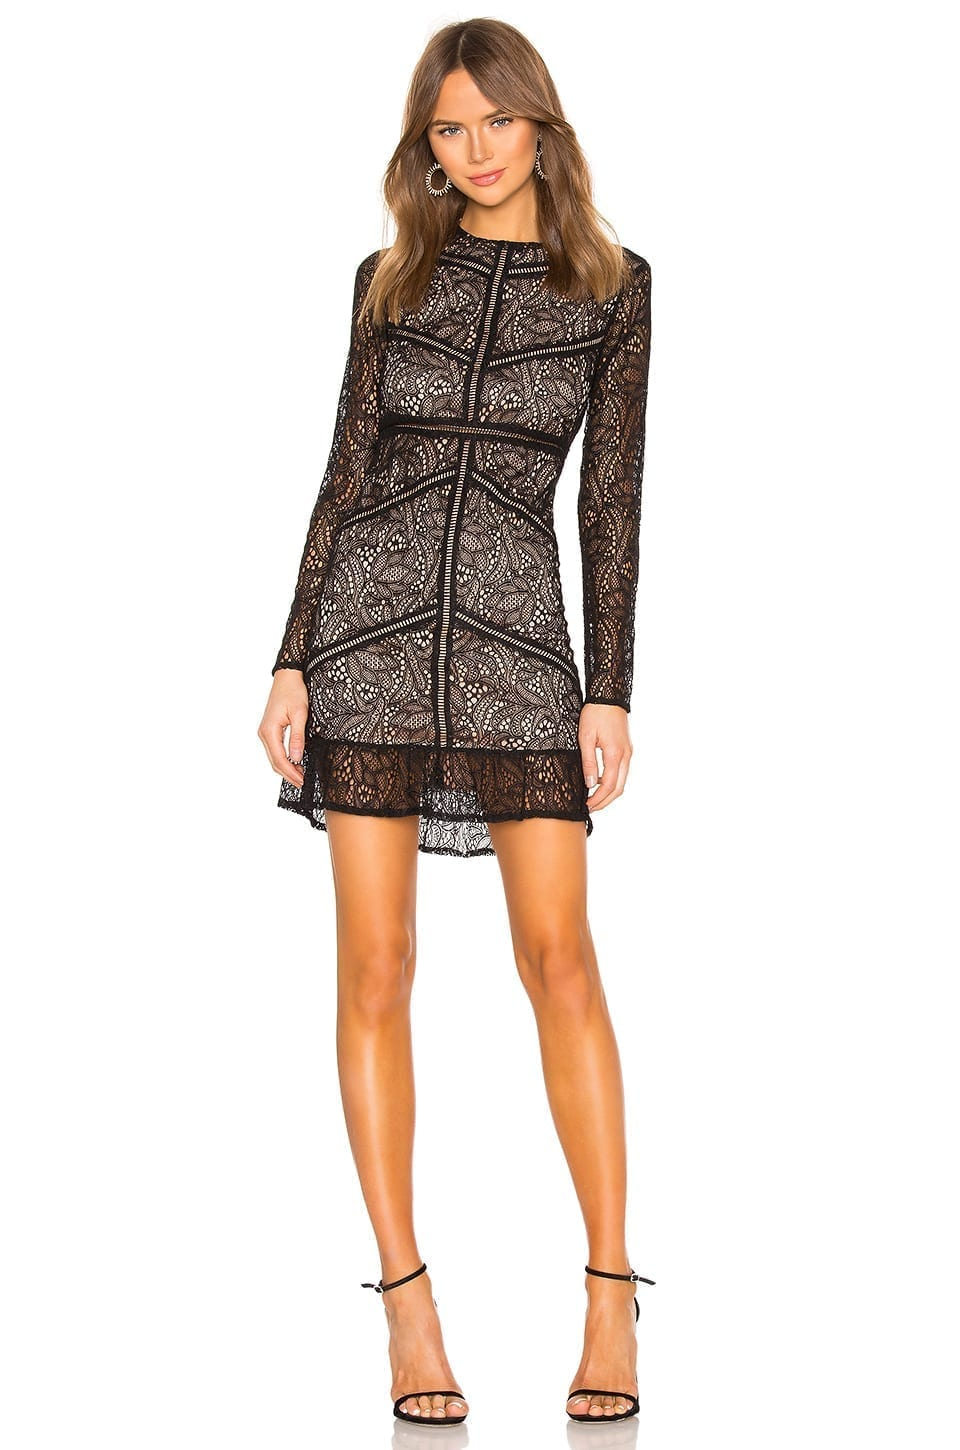 BARDOT Sasha Lace Black Dress